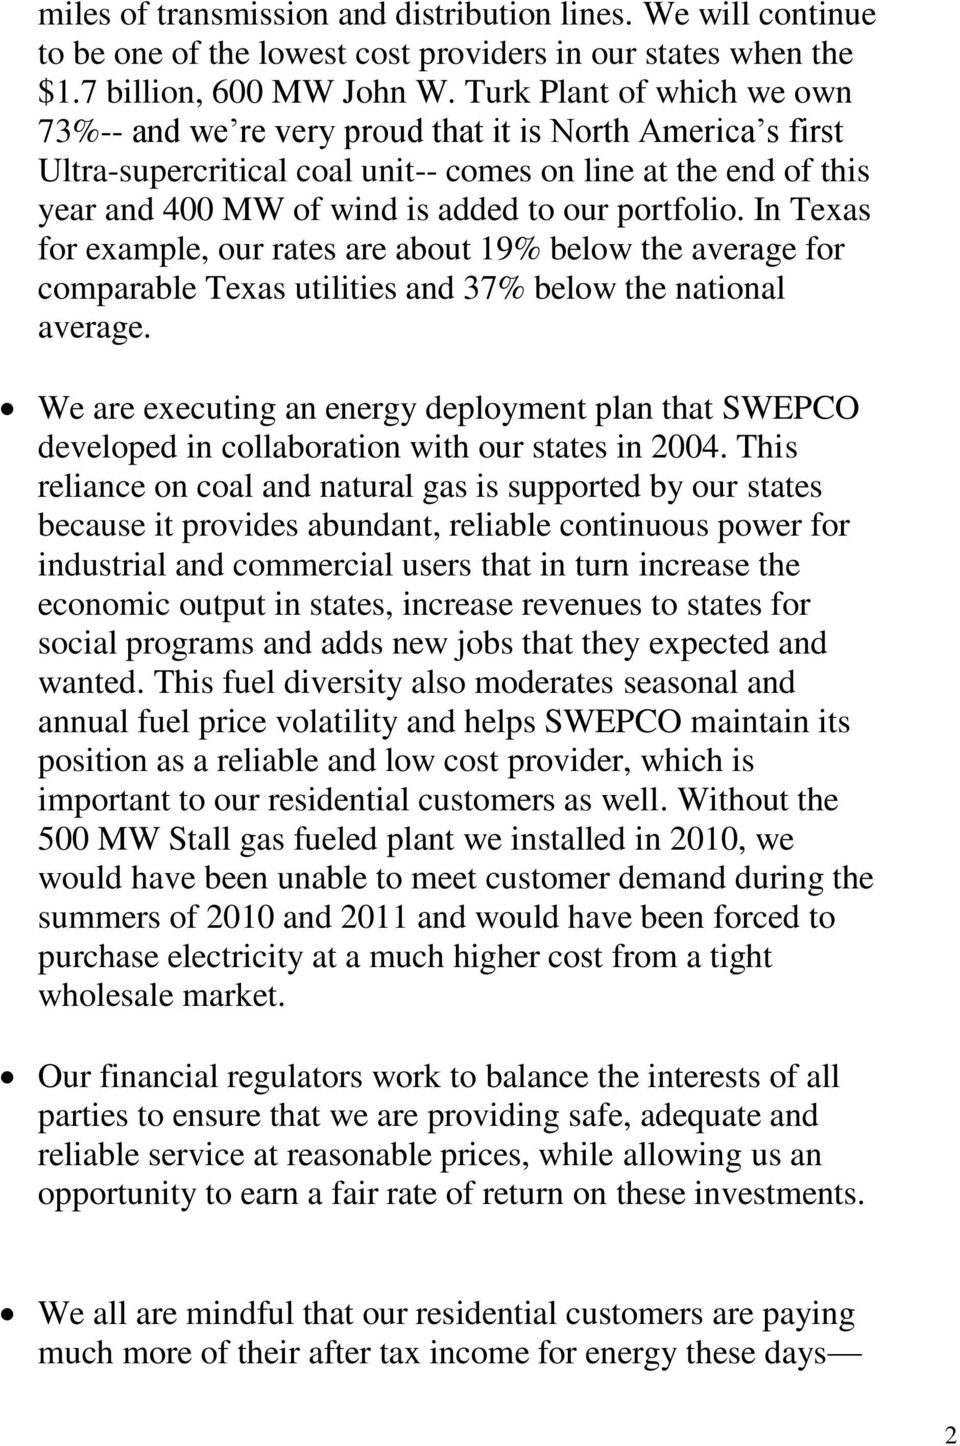 portfolio. In Texas for example, our rates are about 19% below the average for comparable Texas utilities and 37% below the national average.